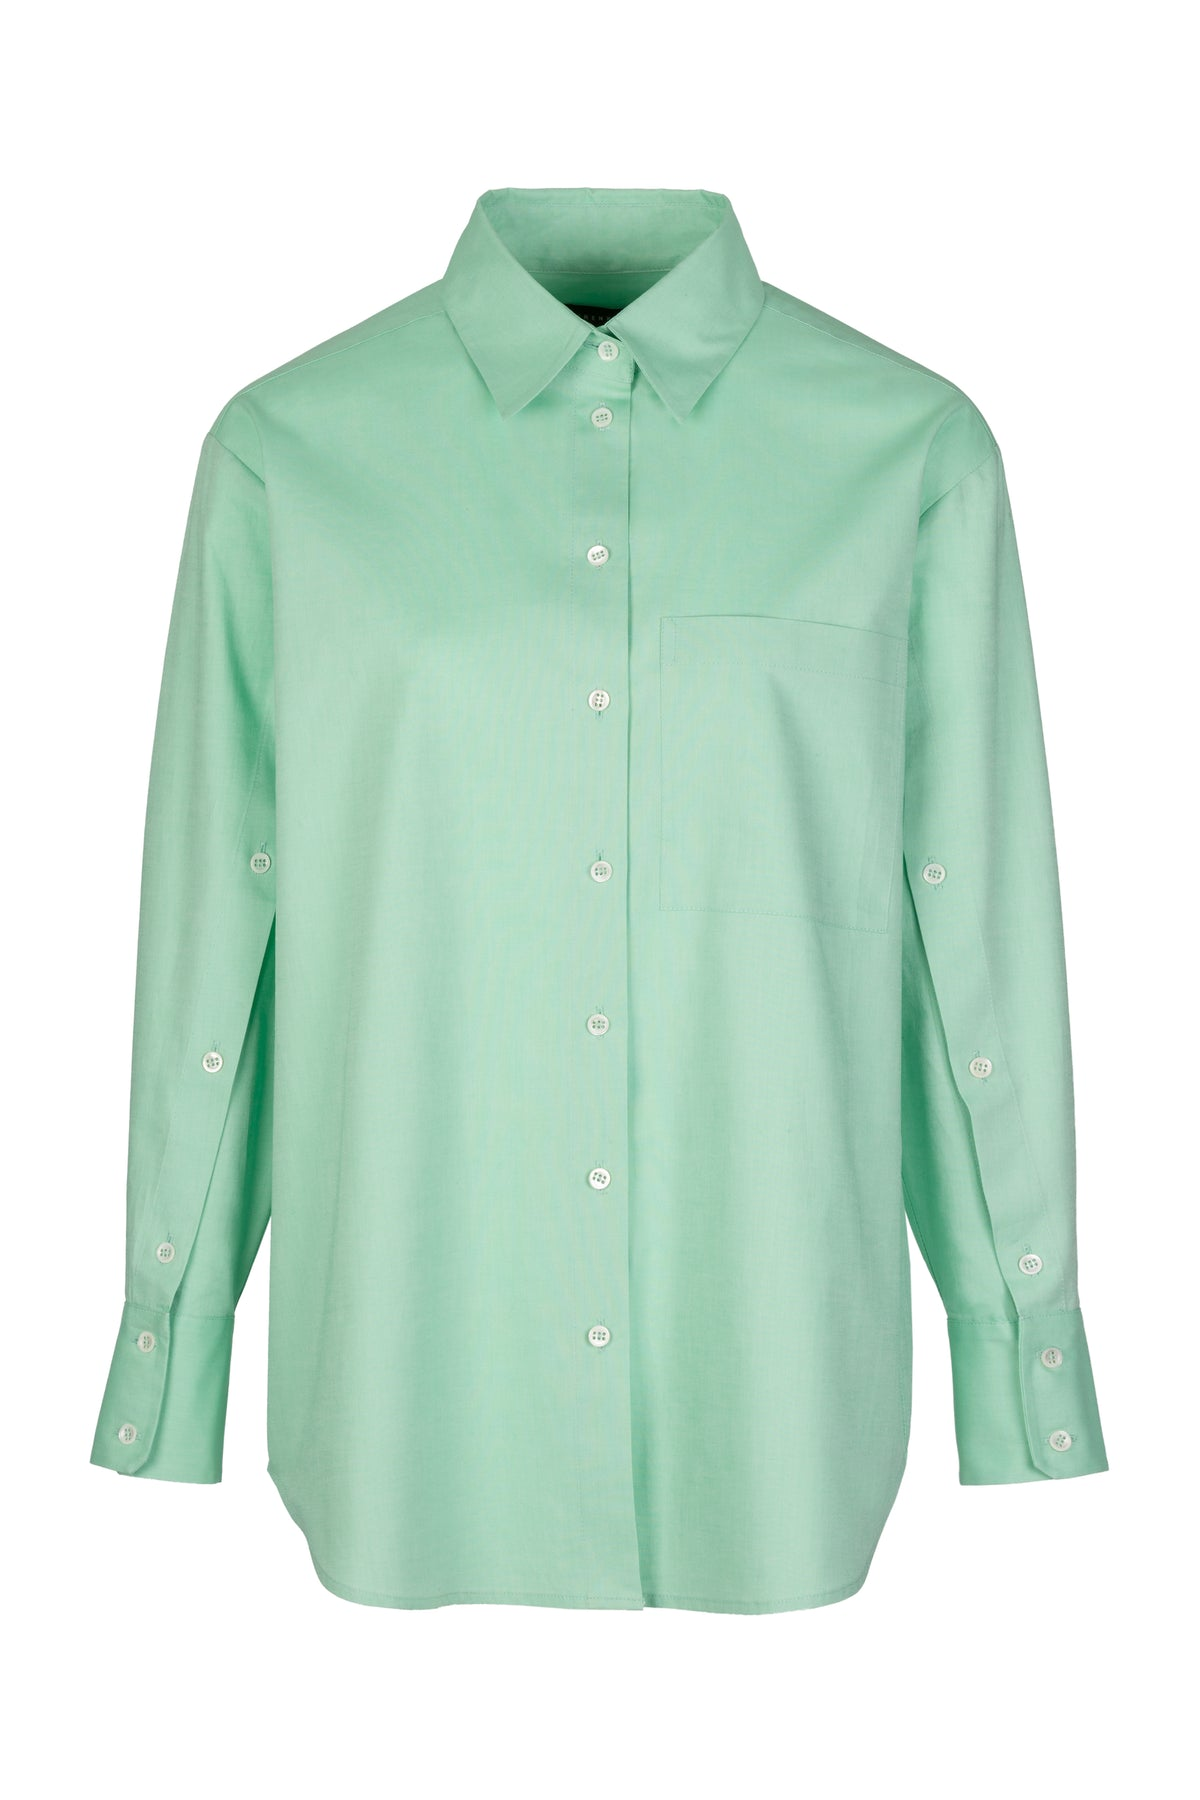 Oxford | Shirt | Light Green